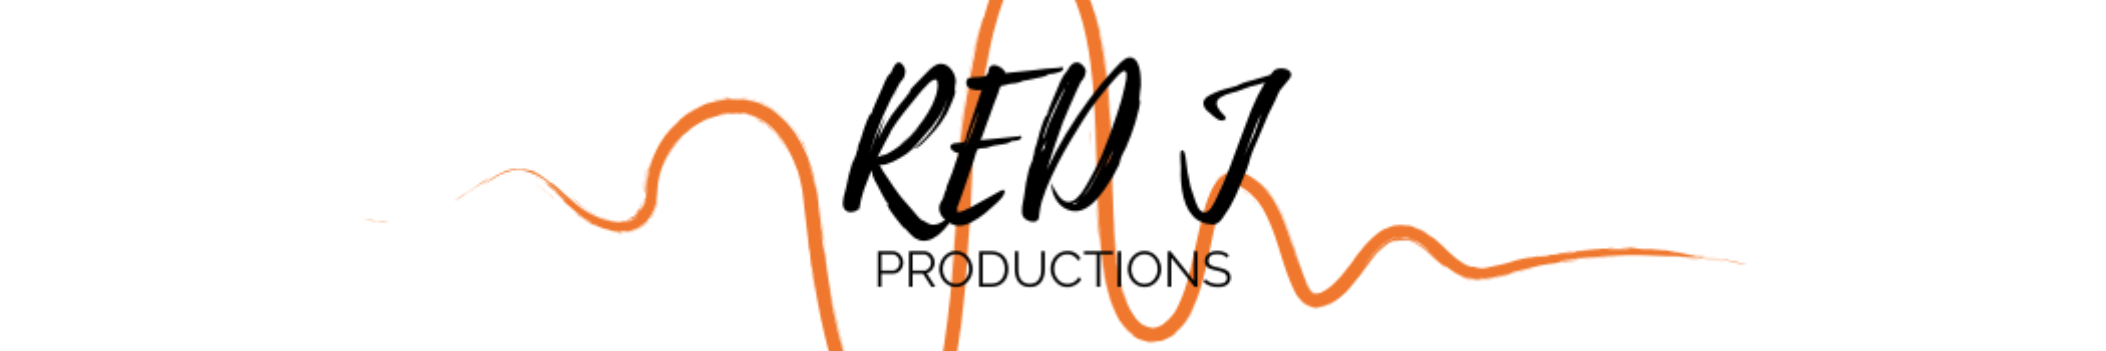 RedJProductions